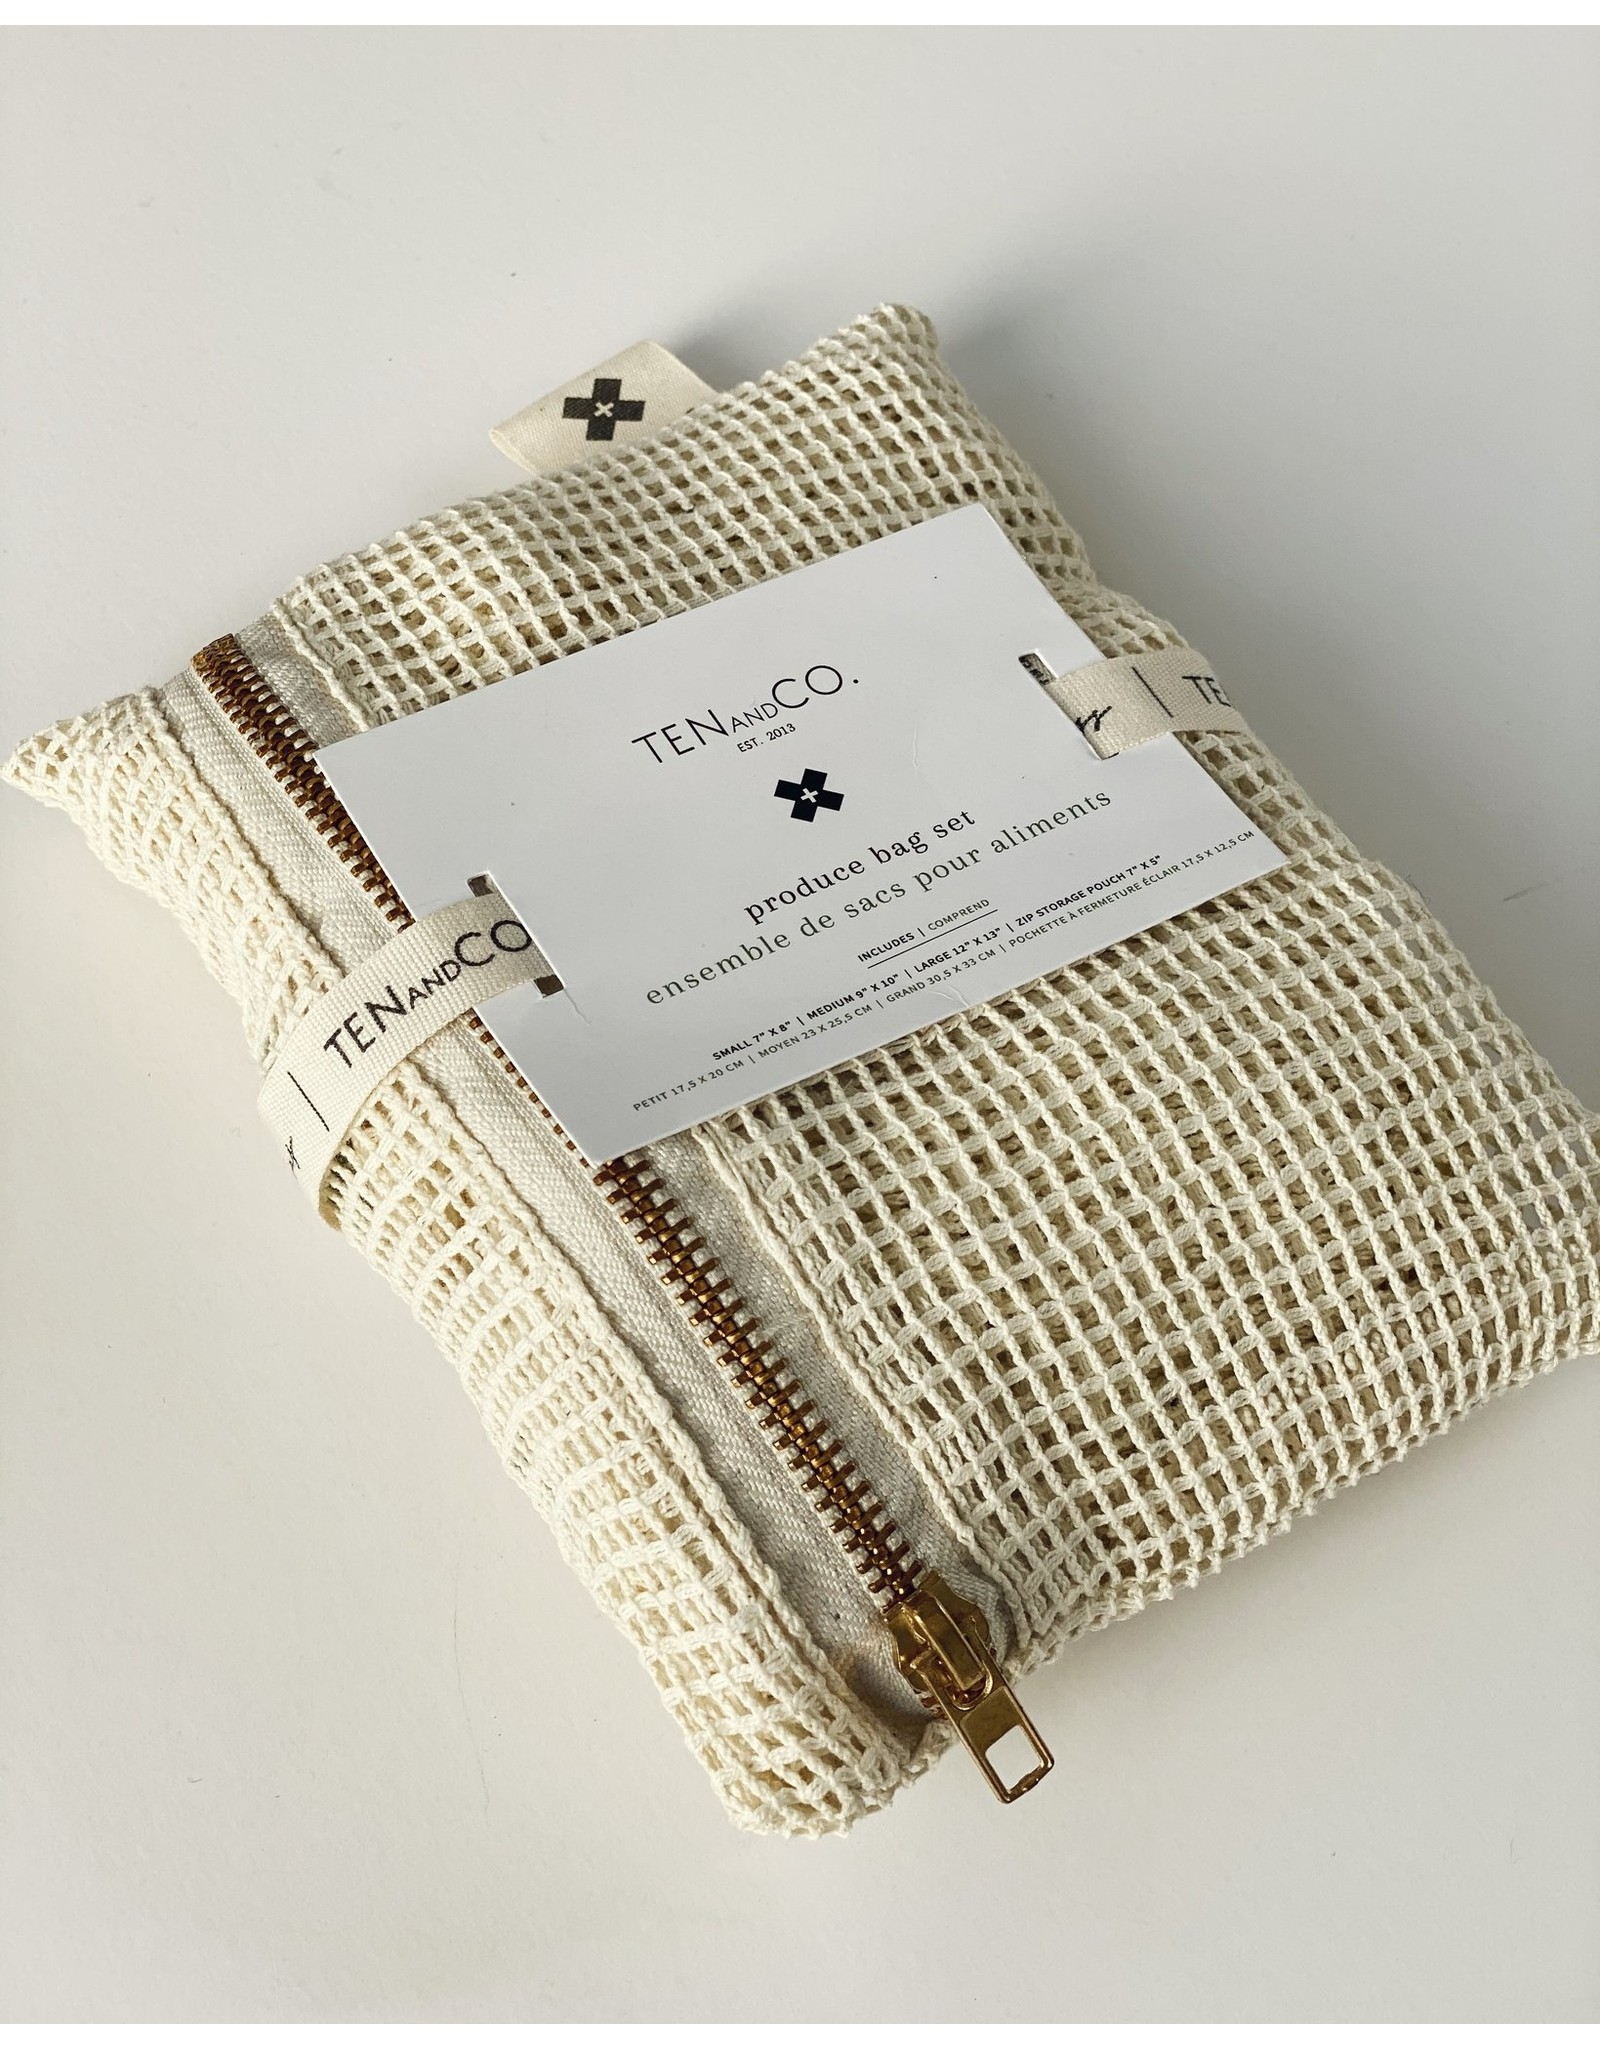 Ten & Co Produce Bag- Set of 3 Plus Zipped Pouch